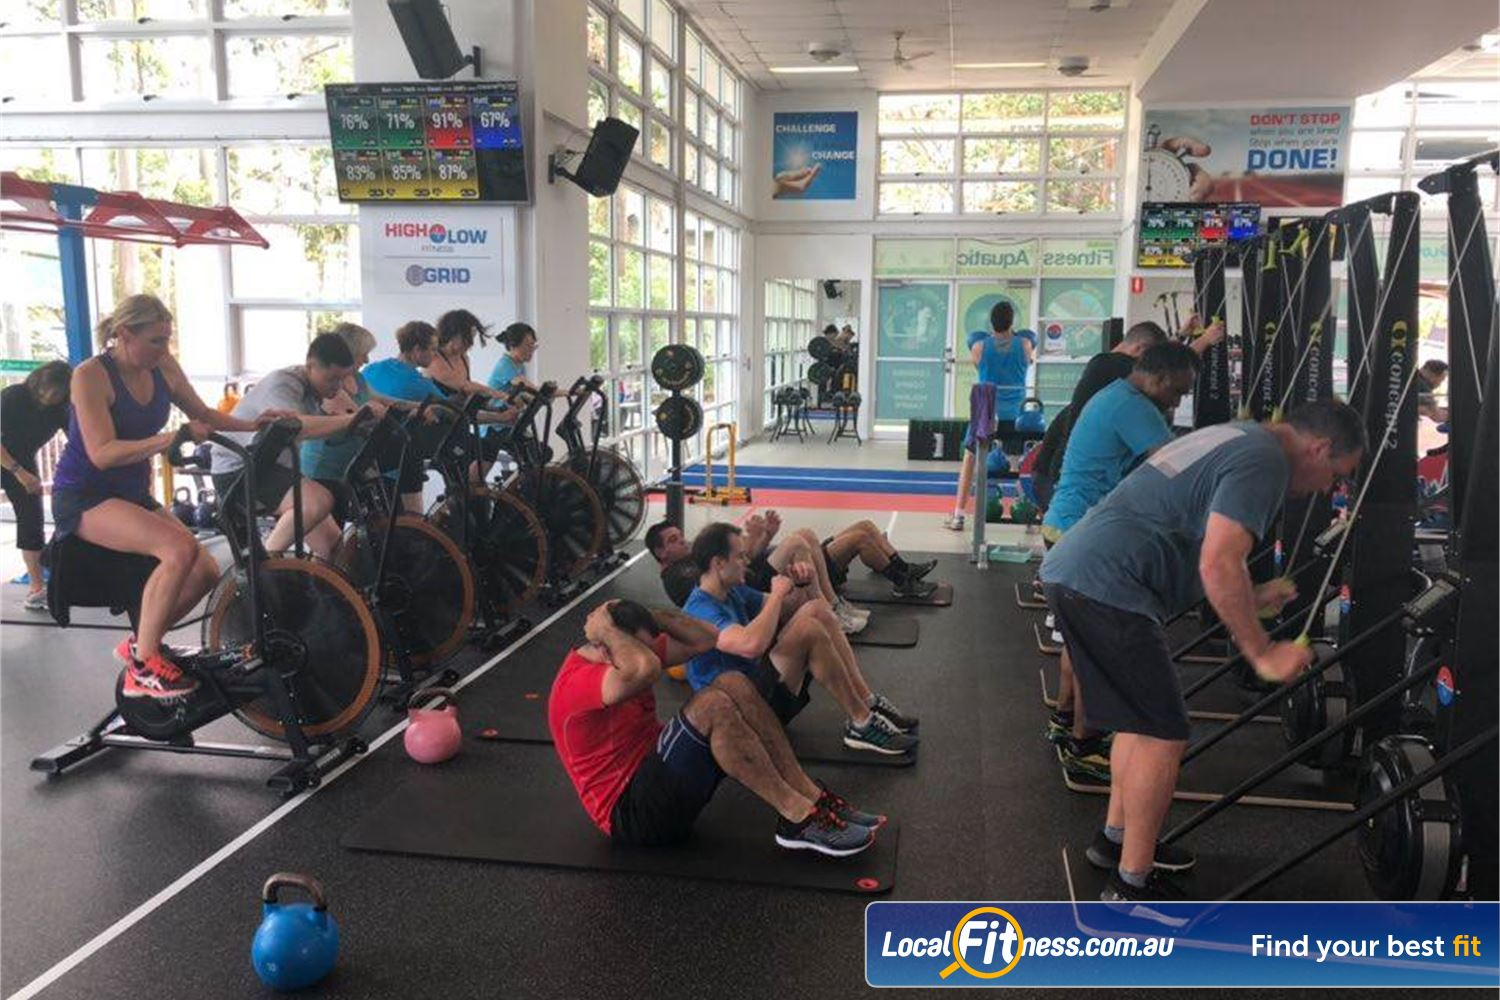 North Ryde Fitness & Aquatic North Ryde HighLow HIIT training is a completely different fitness experience than a normal gym.